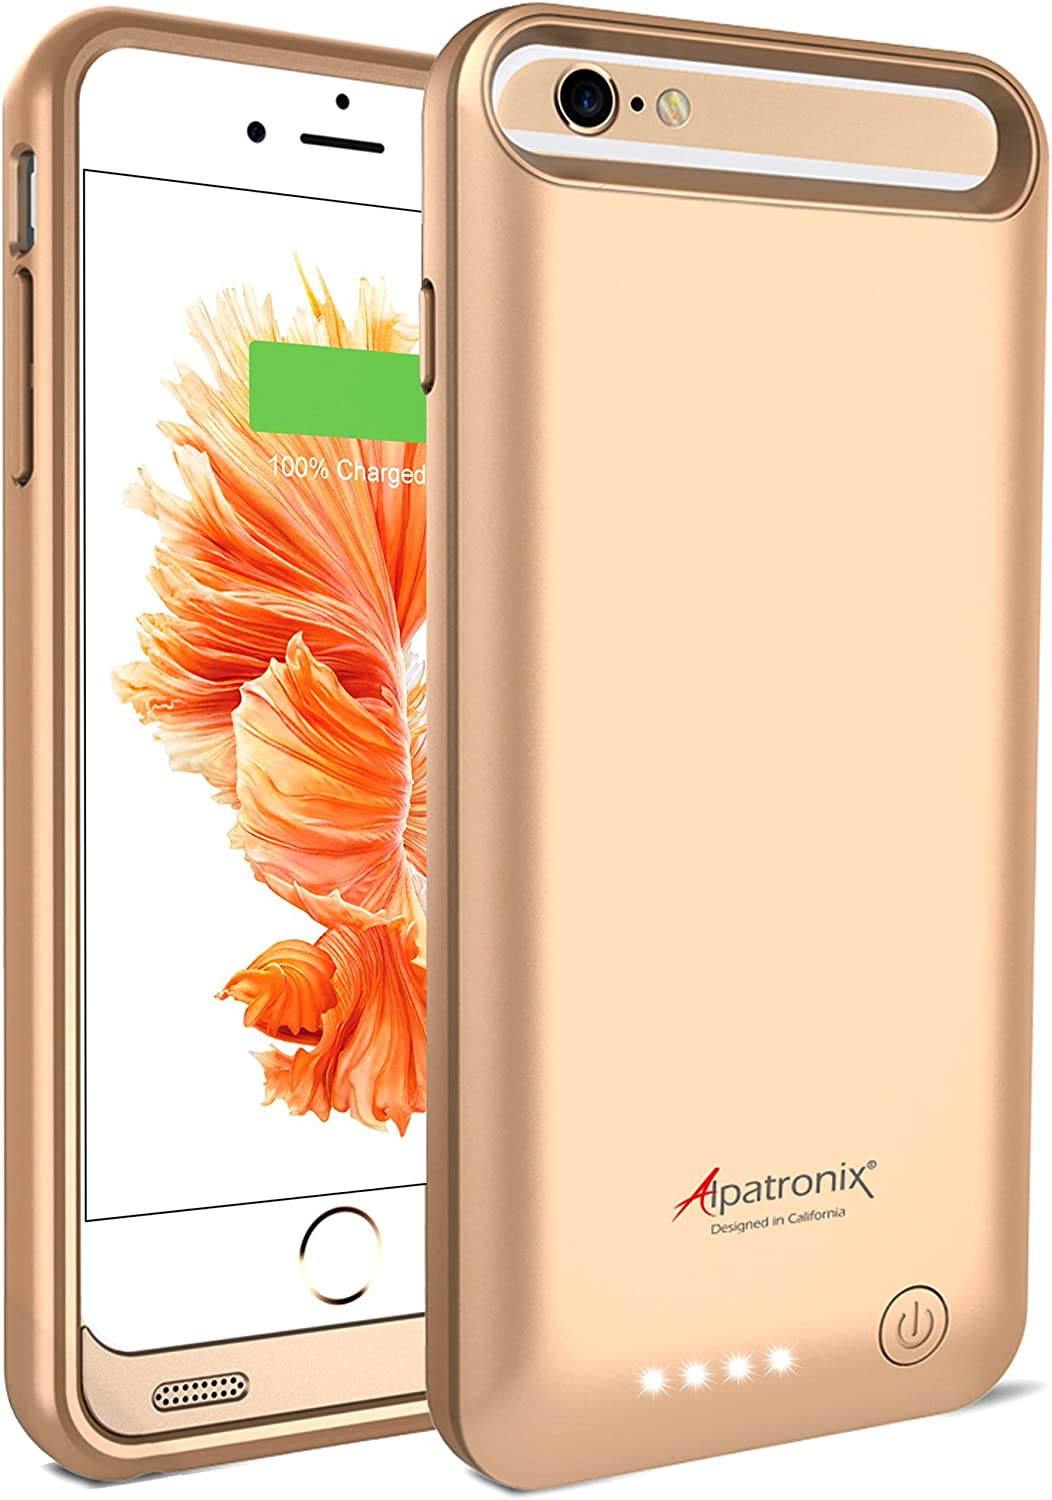 Alpatronix iPhone 6S Plus/6 Plus Battery Case, 4000mAh MFi Certified Slim Portable Protective Extended Charger Cover Compatible with iPhone 6S Plus & iPhone 6 Plus (5.5 inch) BX140plus - (Gold)